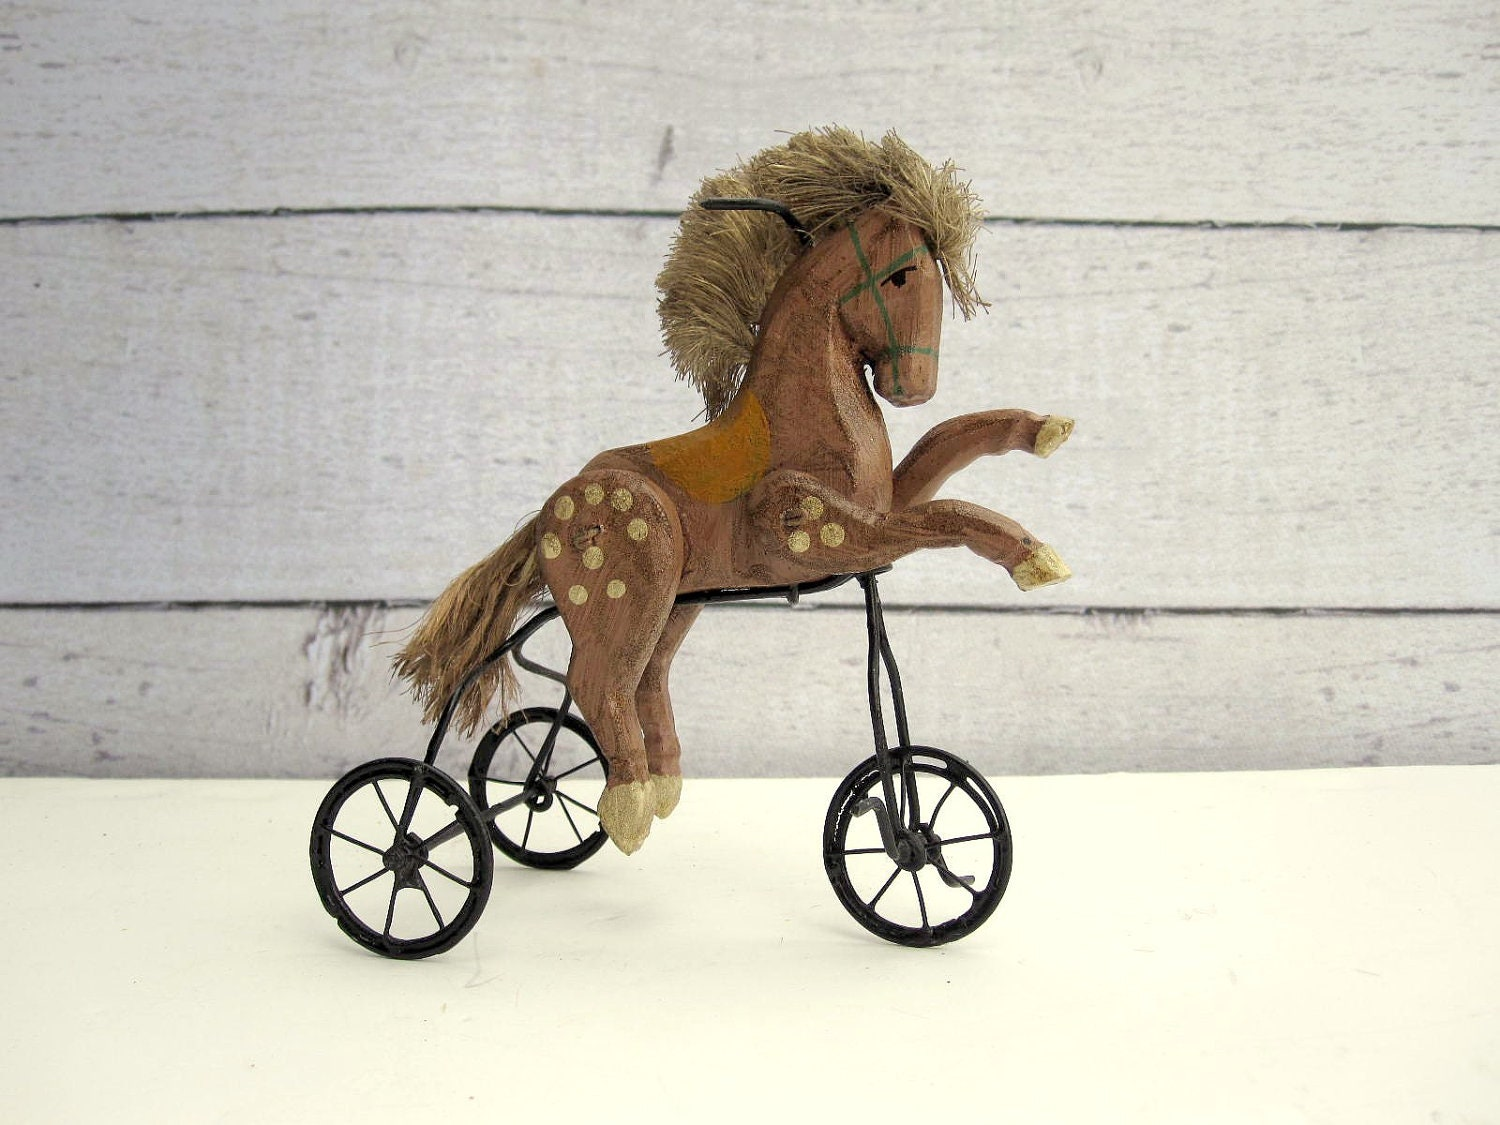 Toy Horse - Wooden Horse Tricycle - LoveButlerVintage